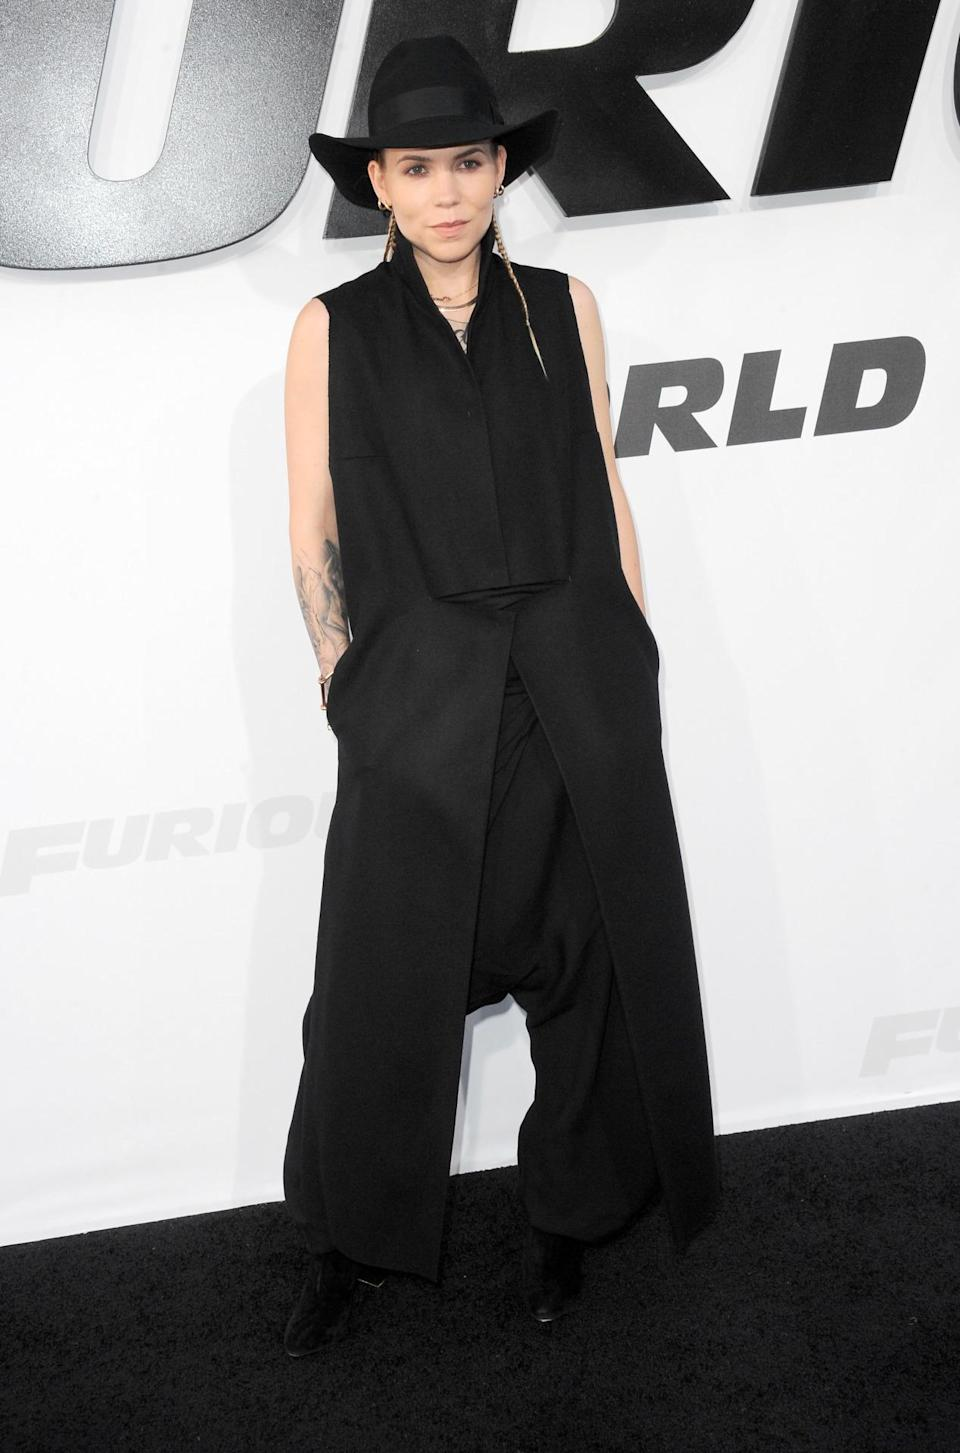 """The artist, whose music """"I Will Return"""" is featured on the """"Furious 7"""" movie soundtrack, showed up to the premiere in a strikingly similar head-to-toe black look that she wears in the song's music video."""